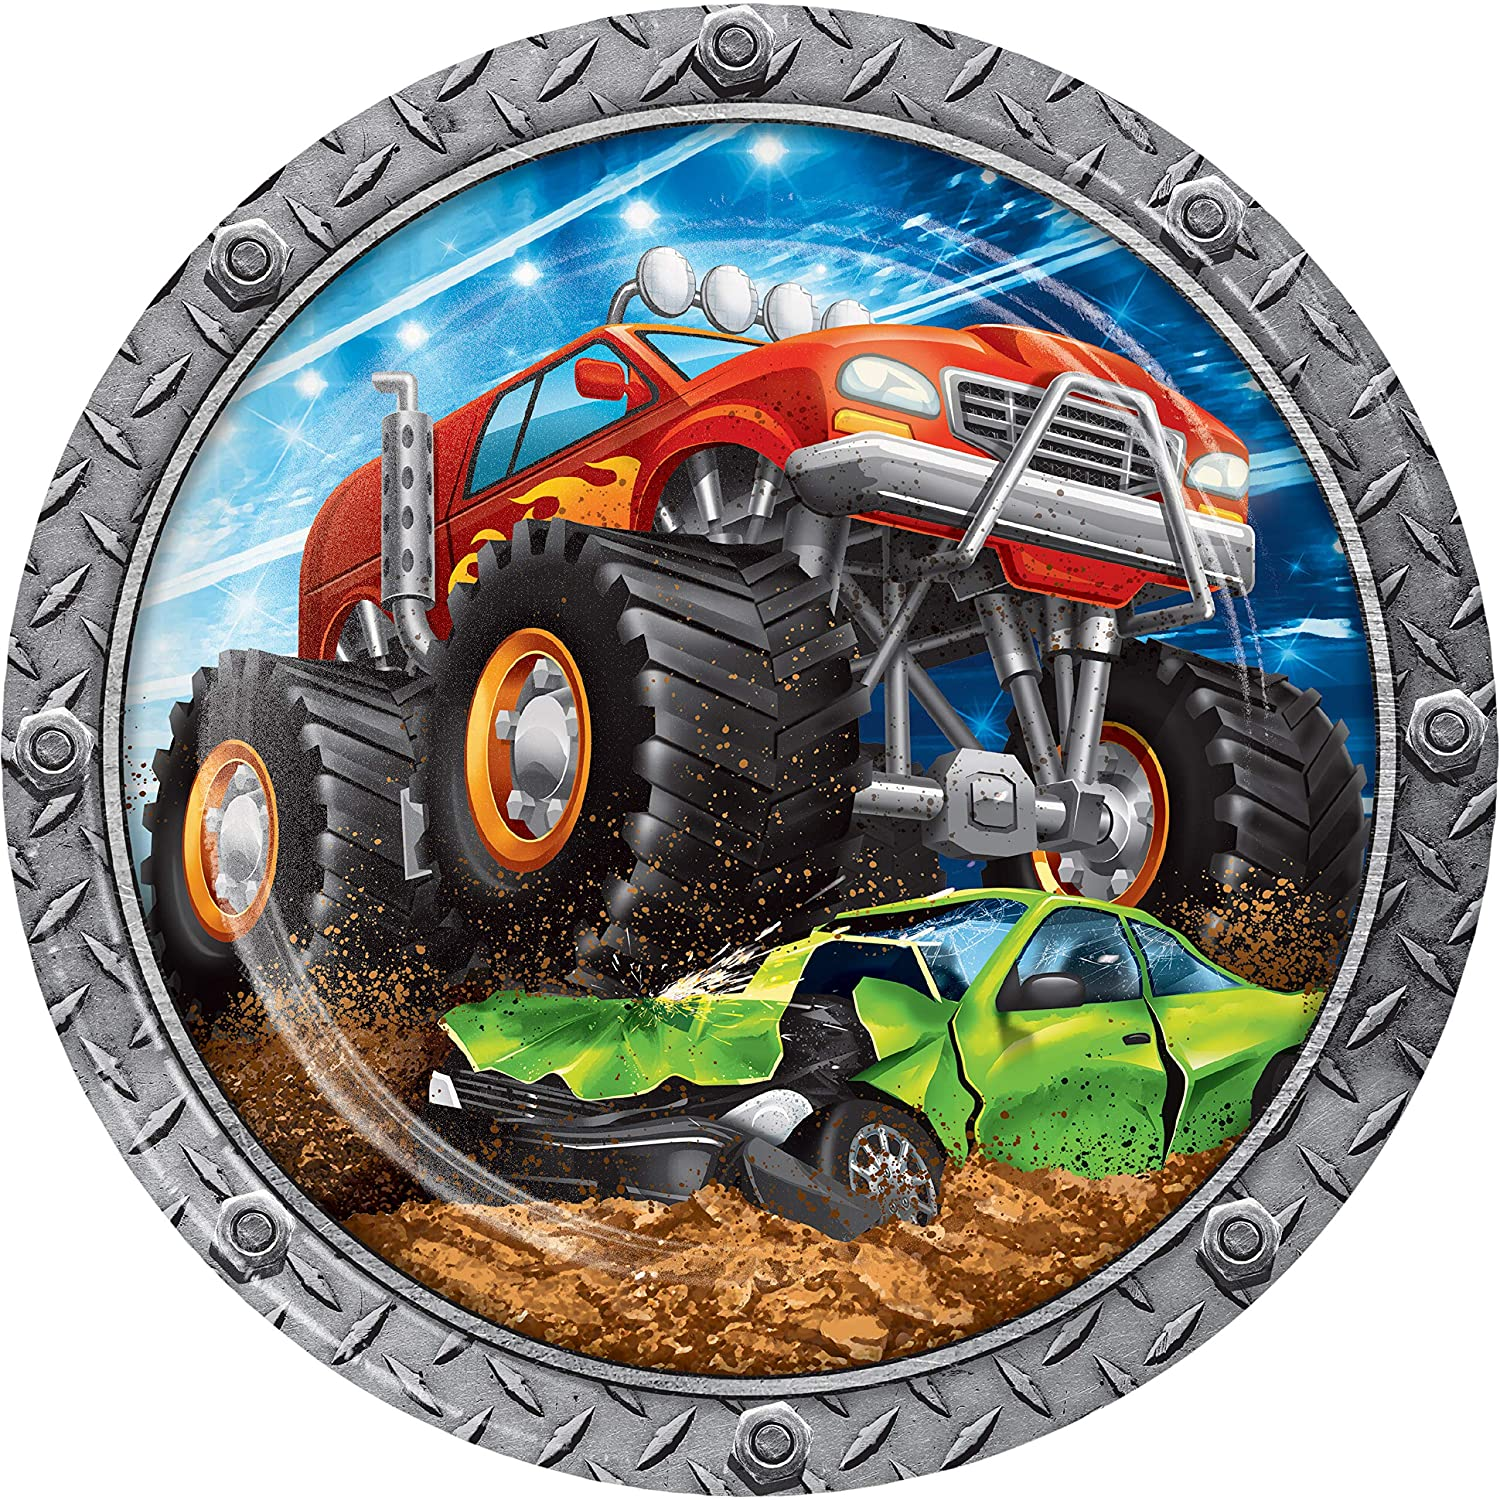 Monster Truck Paper Plates, 24 ct